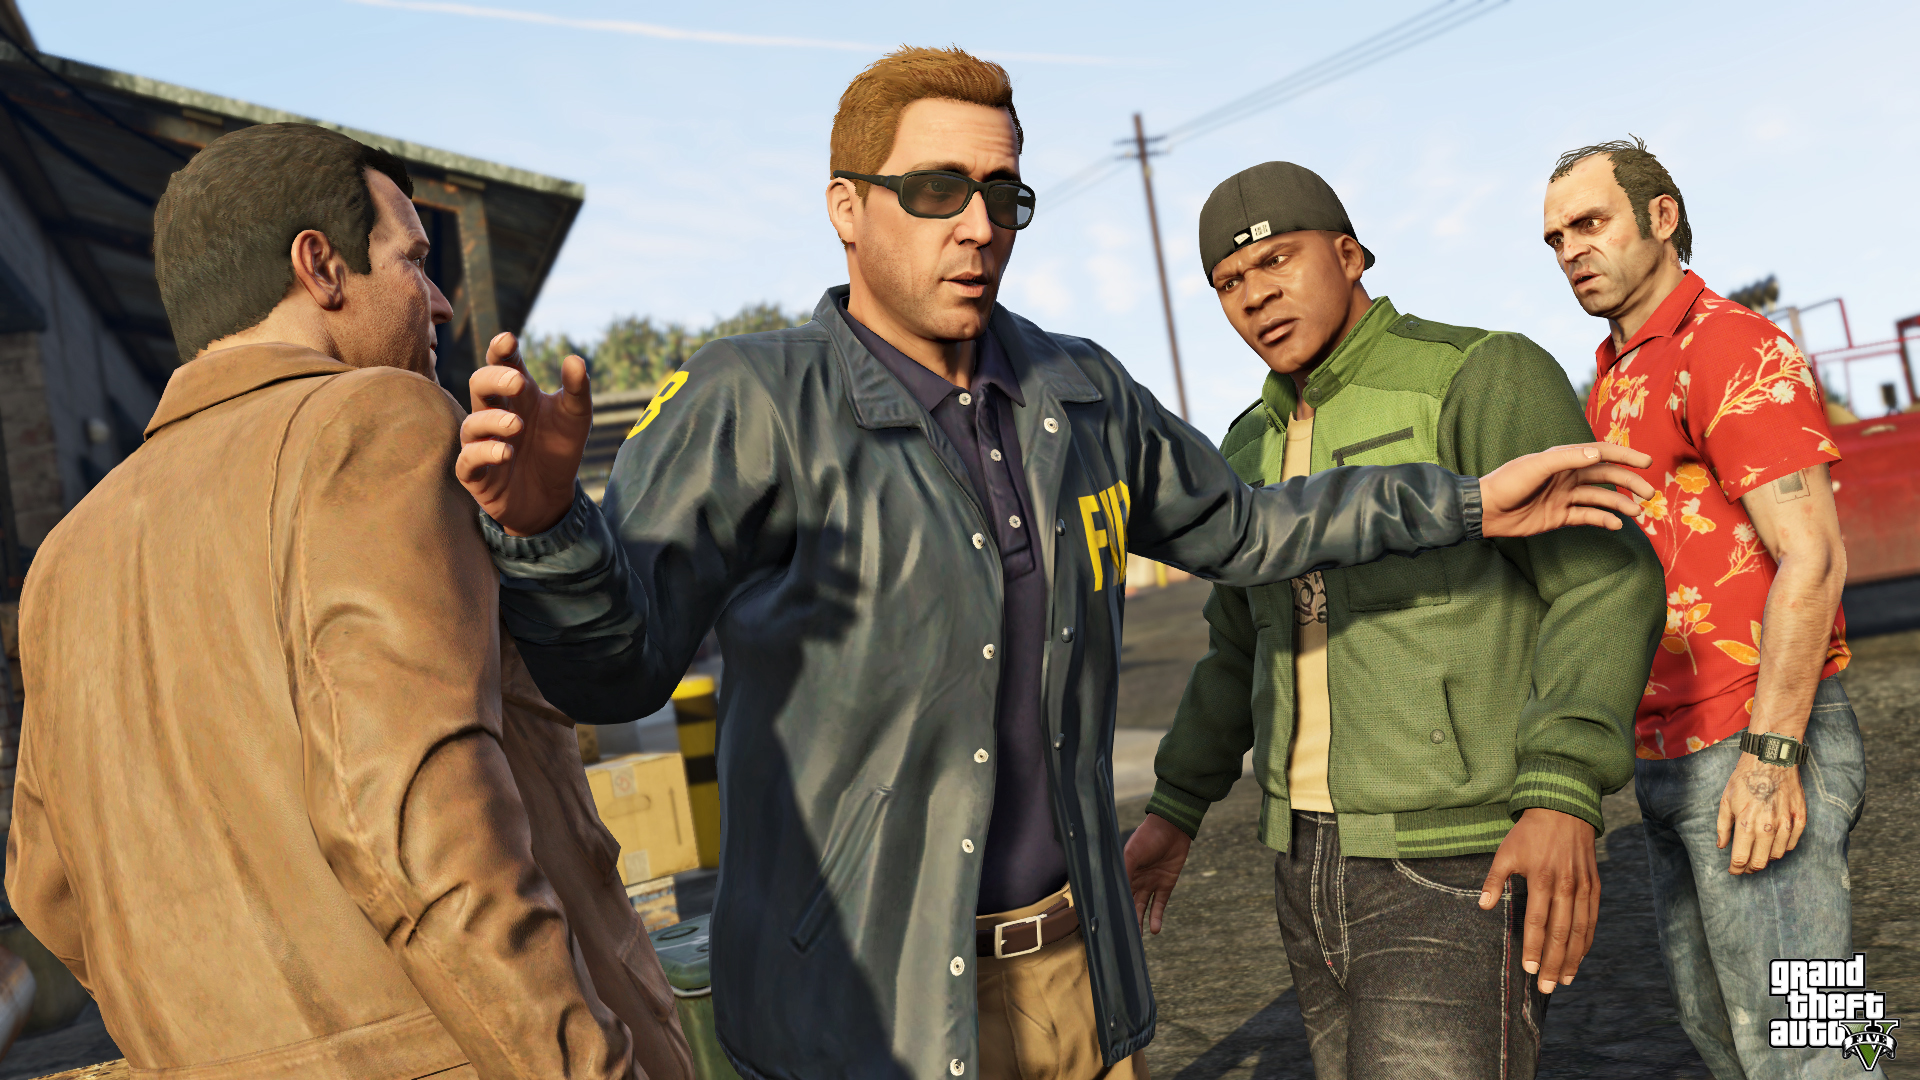 Grand Theft Auto V Review: Steal cars, rob banks and murder